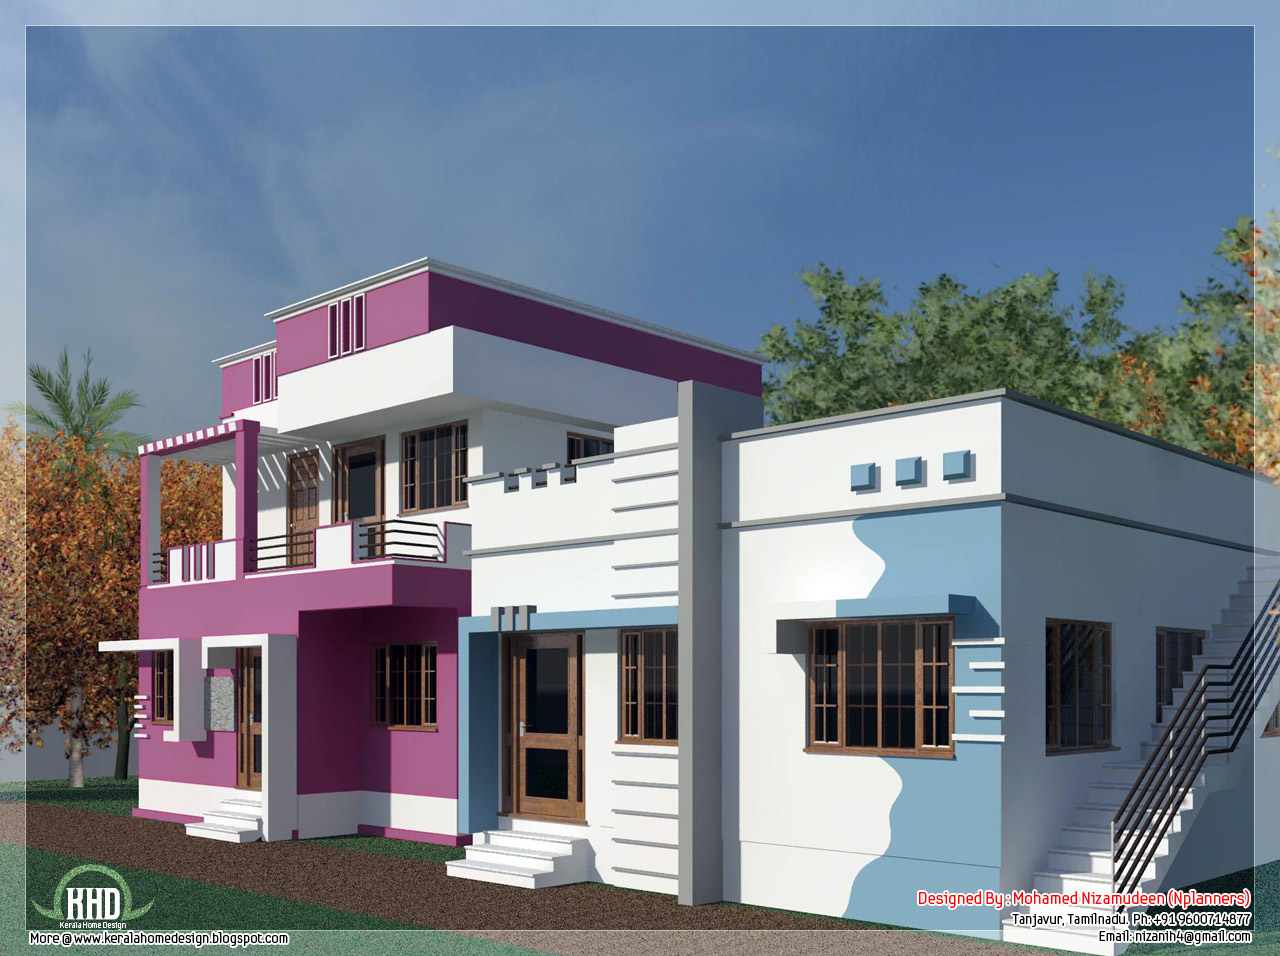 Tamilnadu model home desgin in 3000 kerala home for New home models and plans